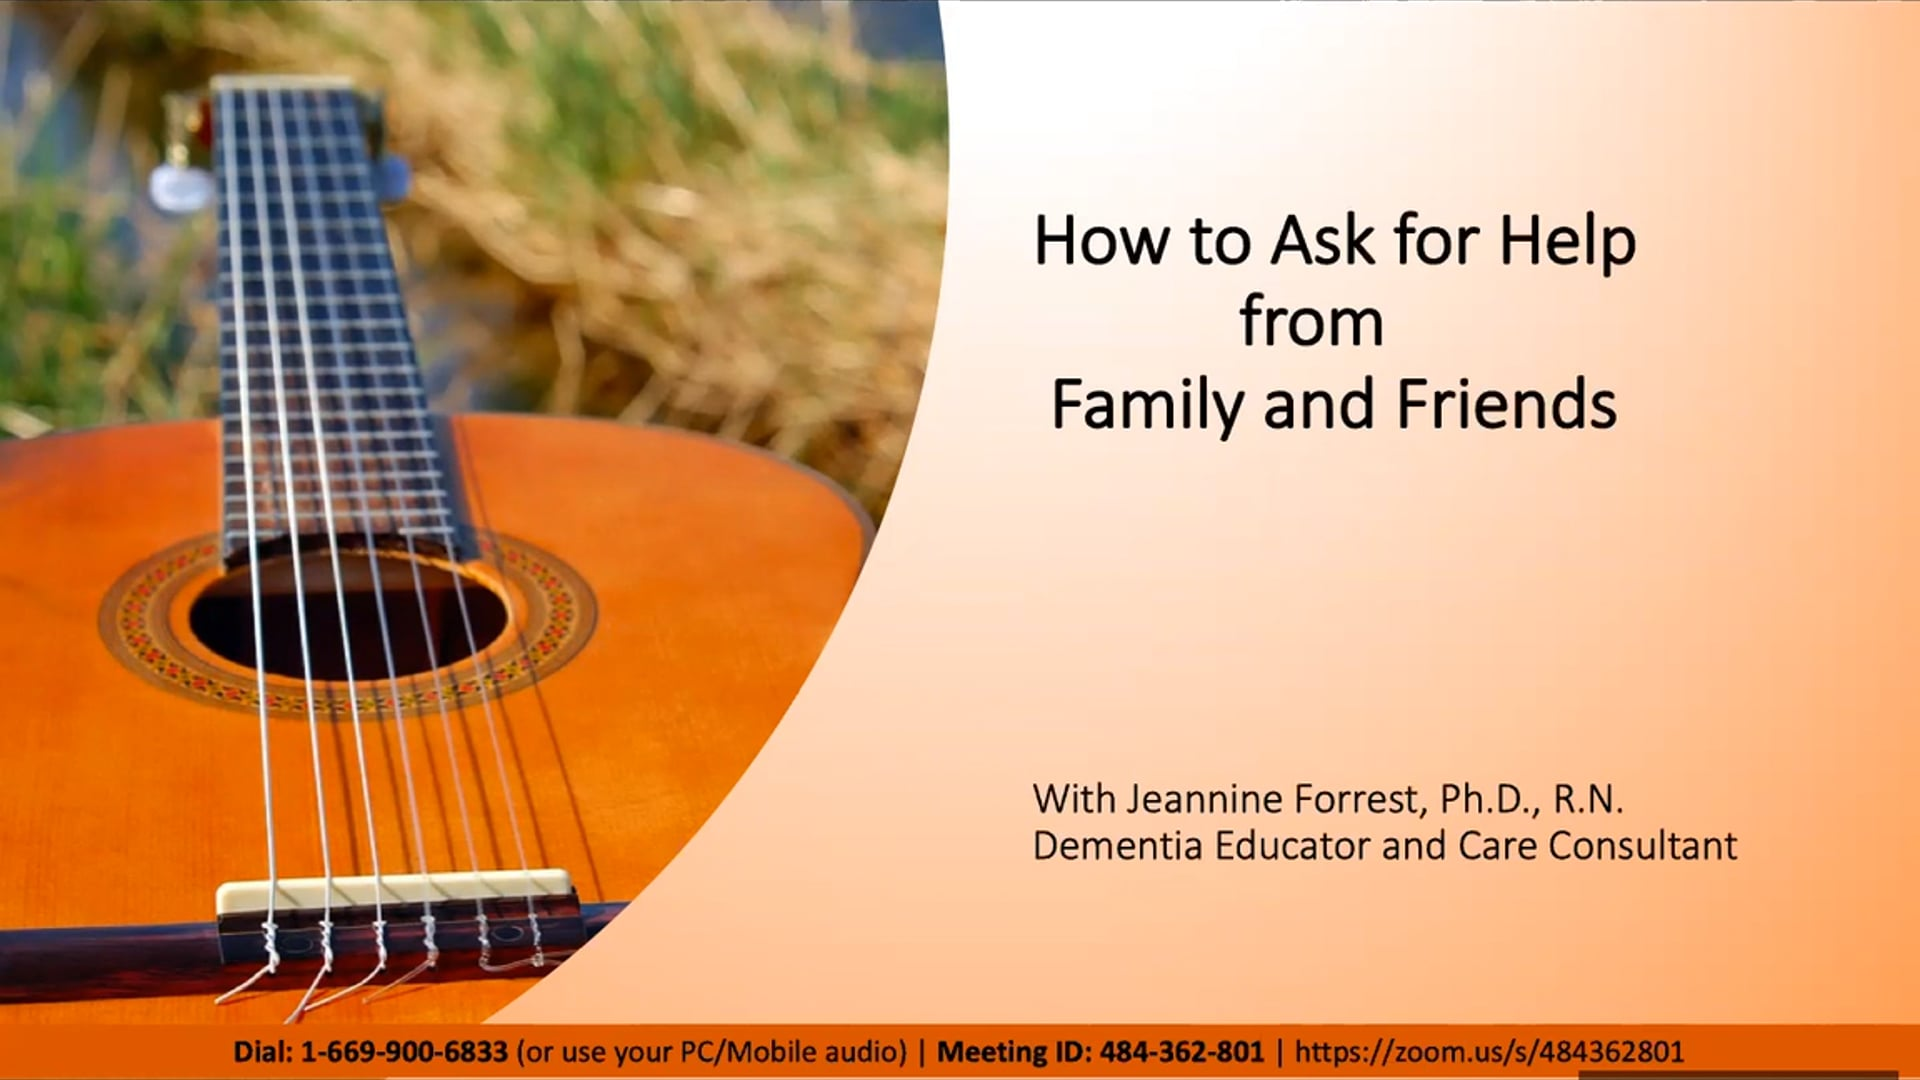 How to Ask for Help from Family and Friends